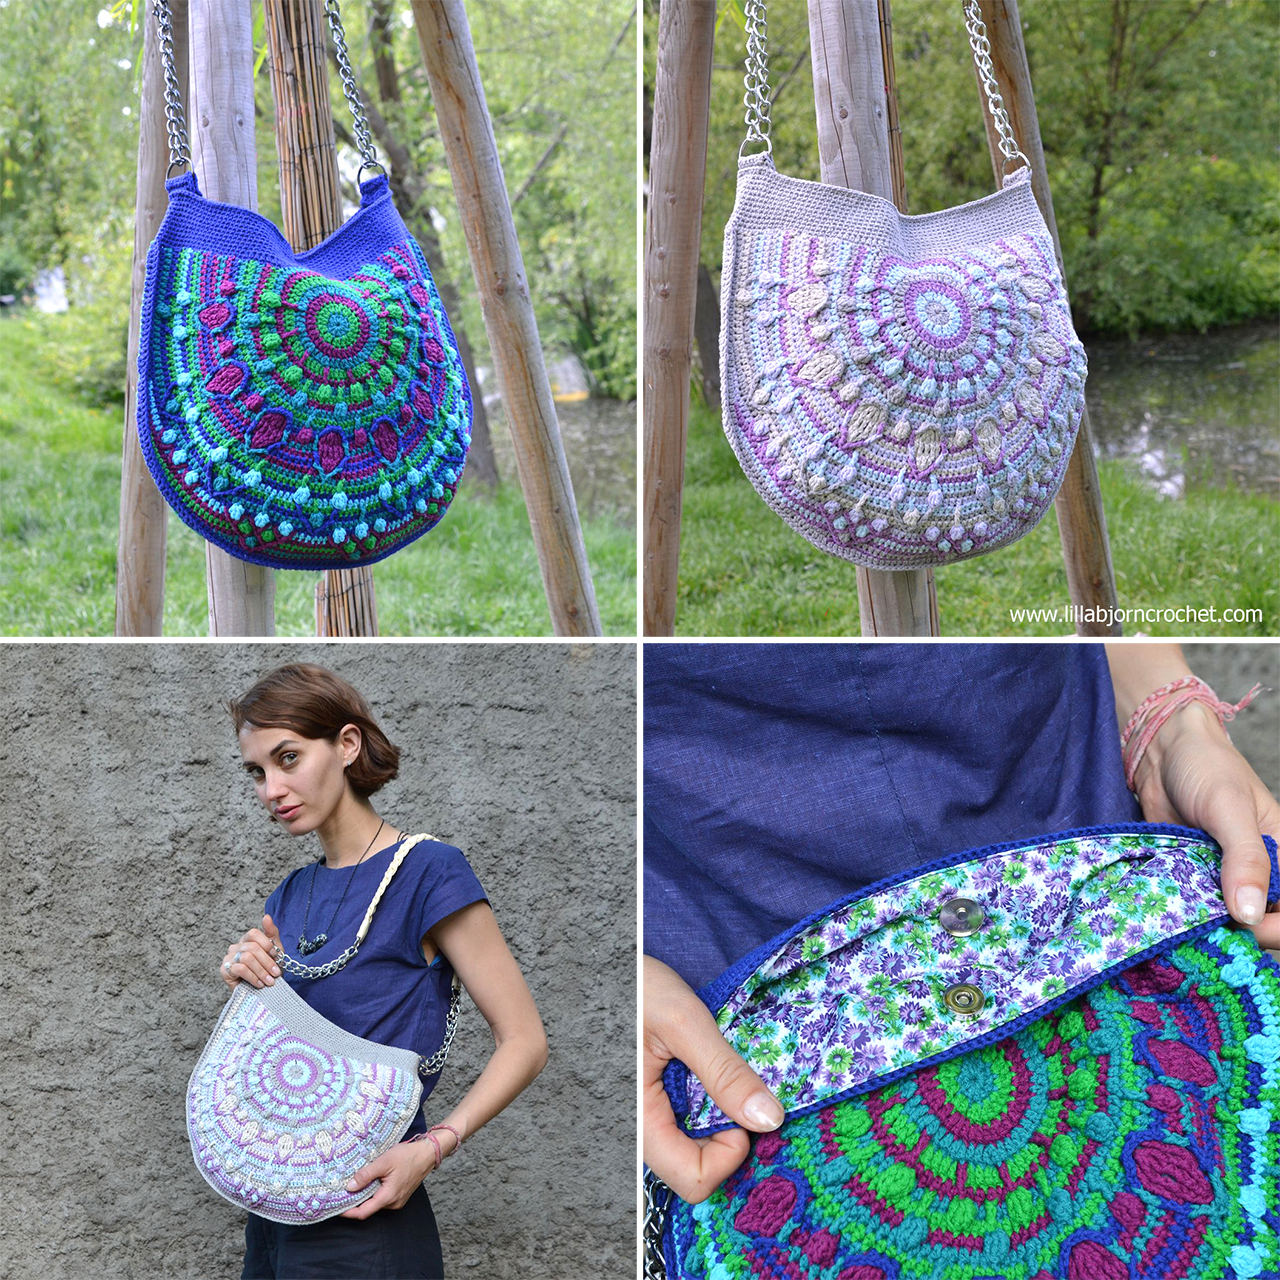 Peacock Tail Bag CAL - Part 1. Original design by Lilla Bjorn Crochet